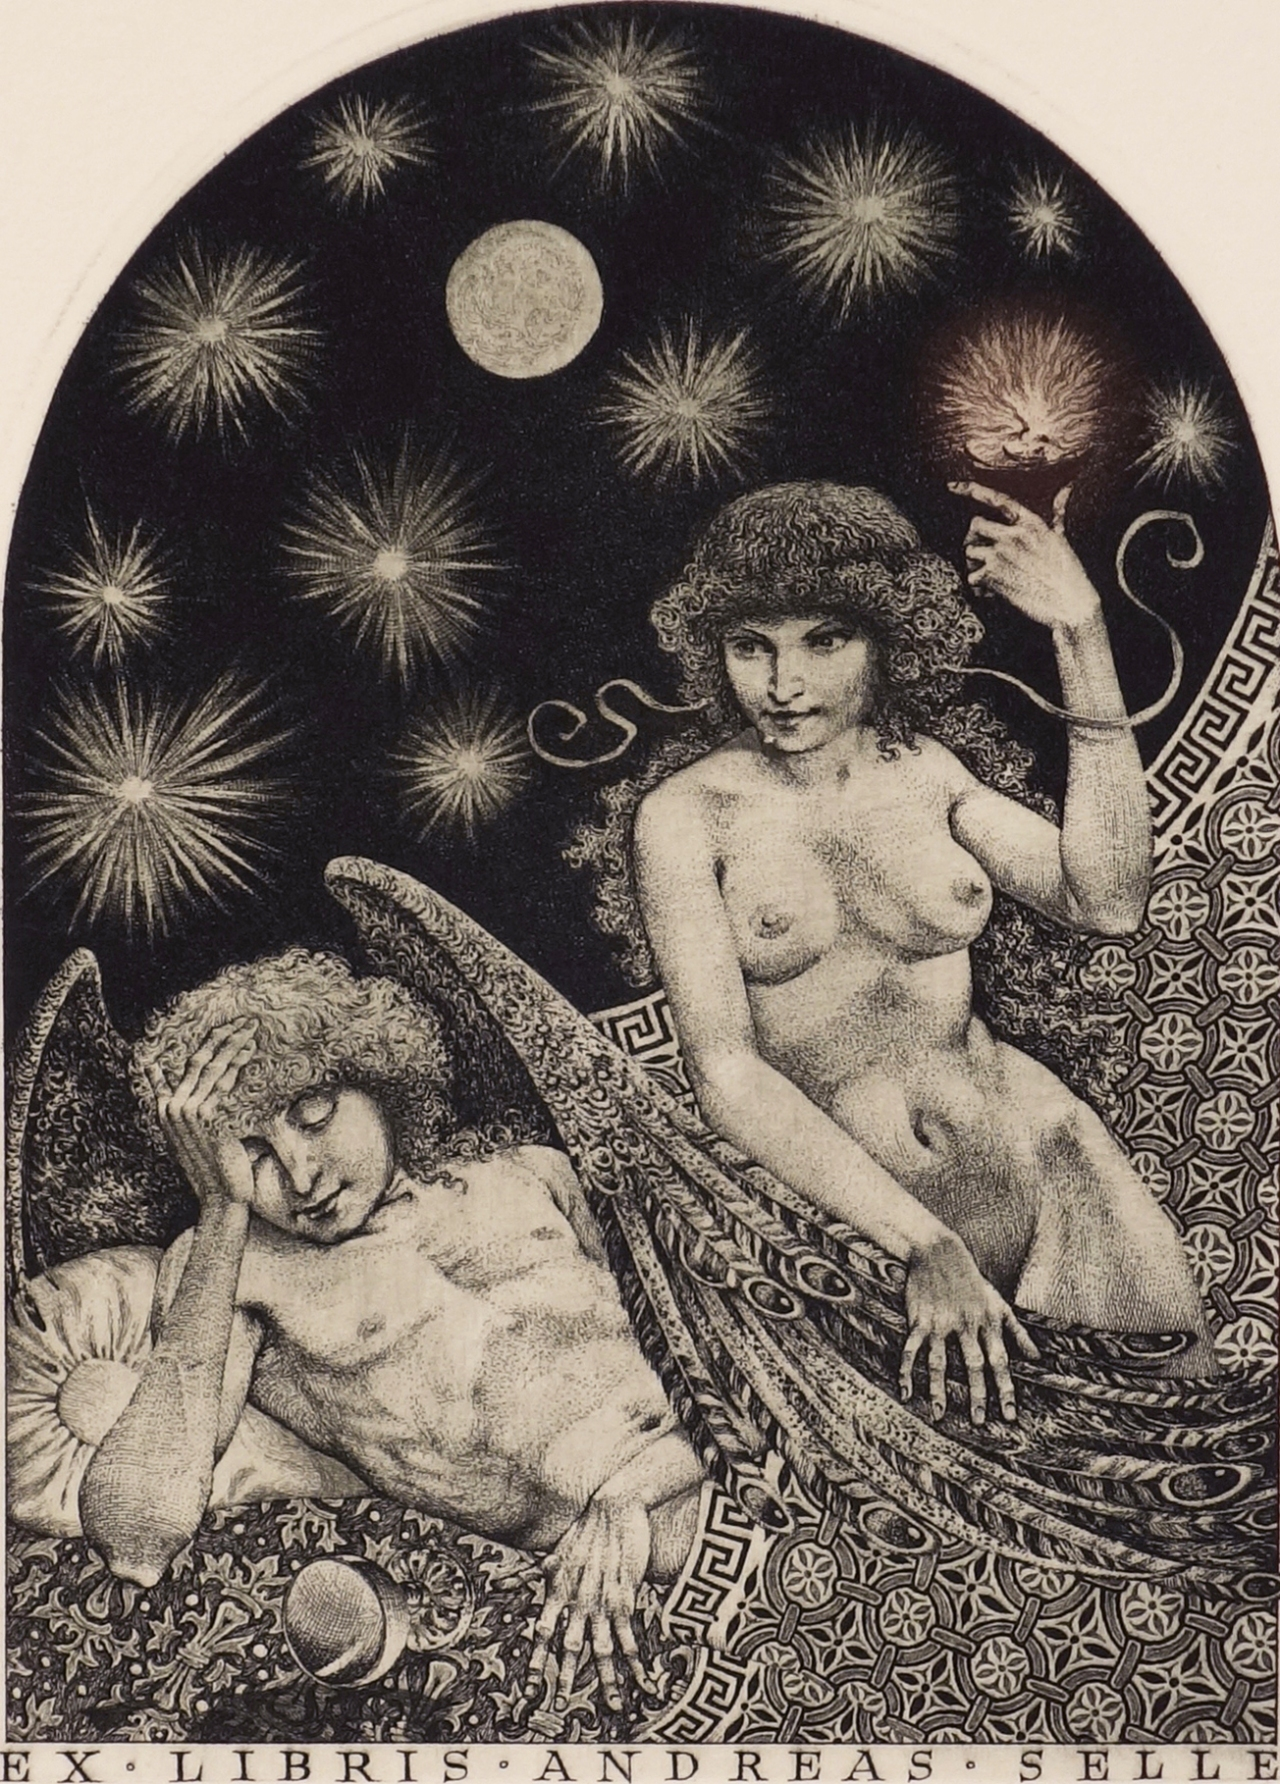 Asteroids of love part 1: Eros and Psyche